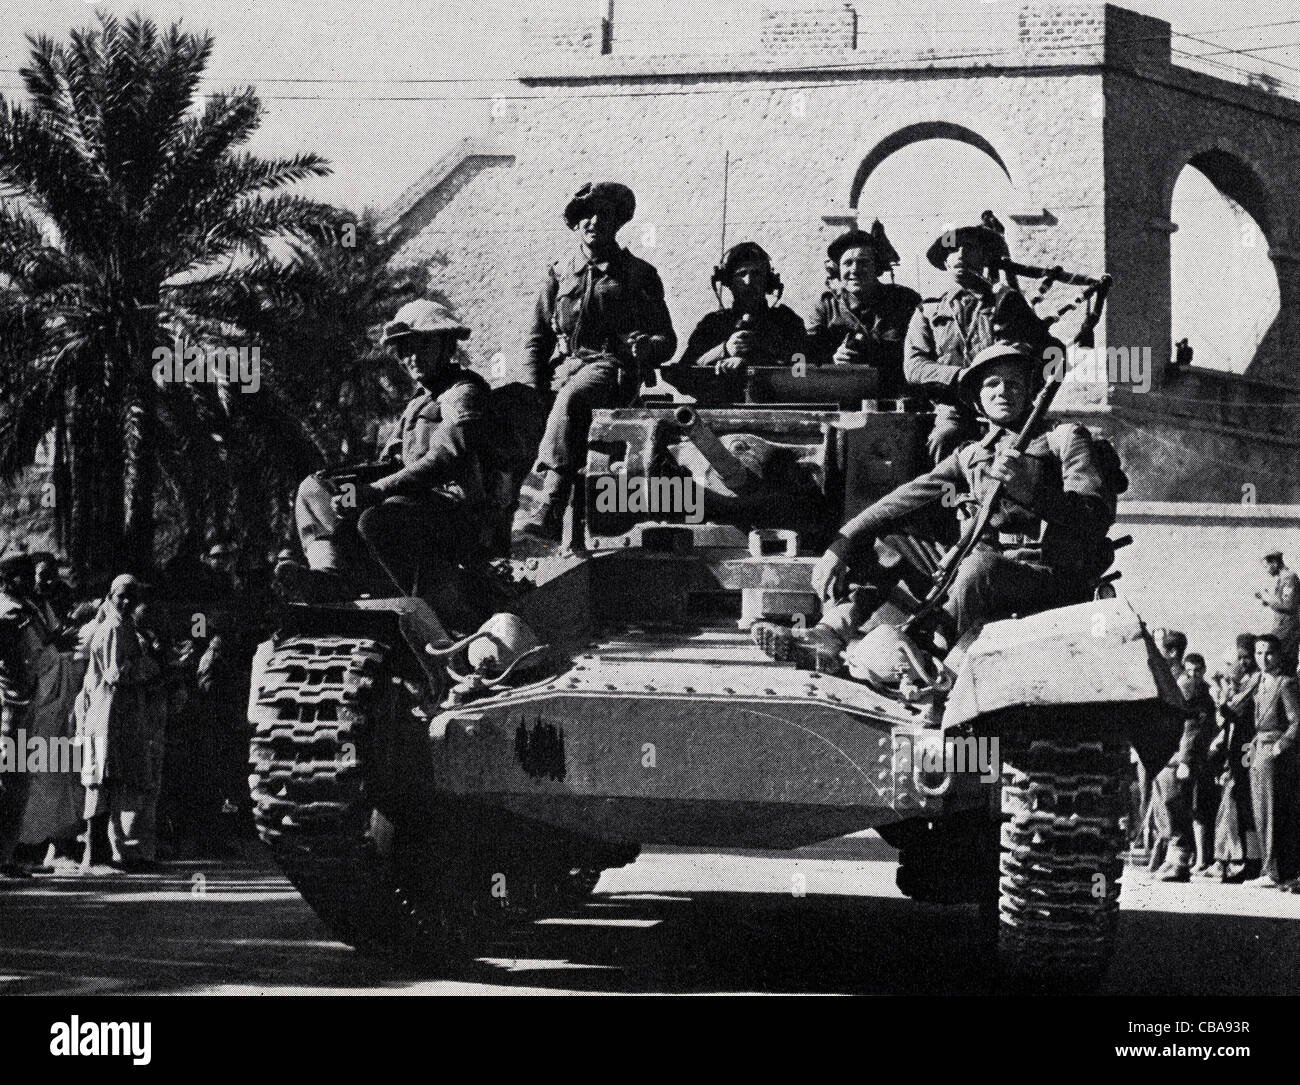 A British Valentine tank with highland infantry in North Africa during WW11. - Stock Image